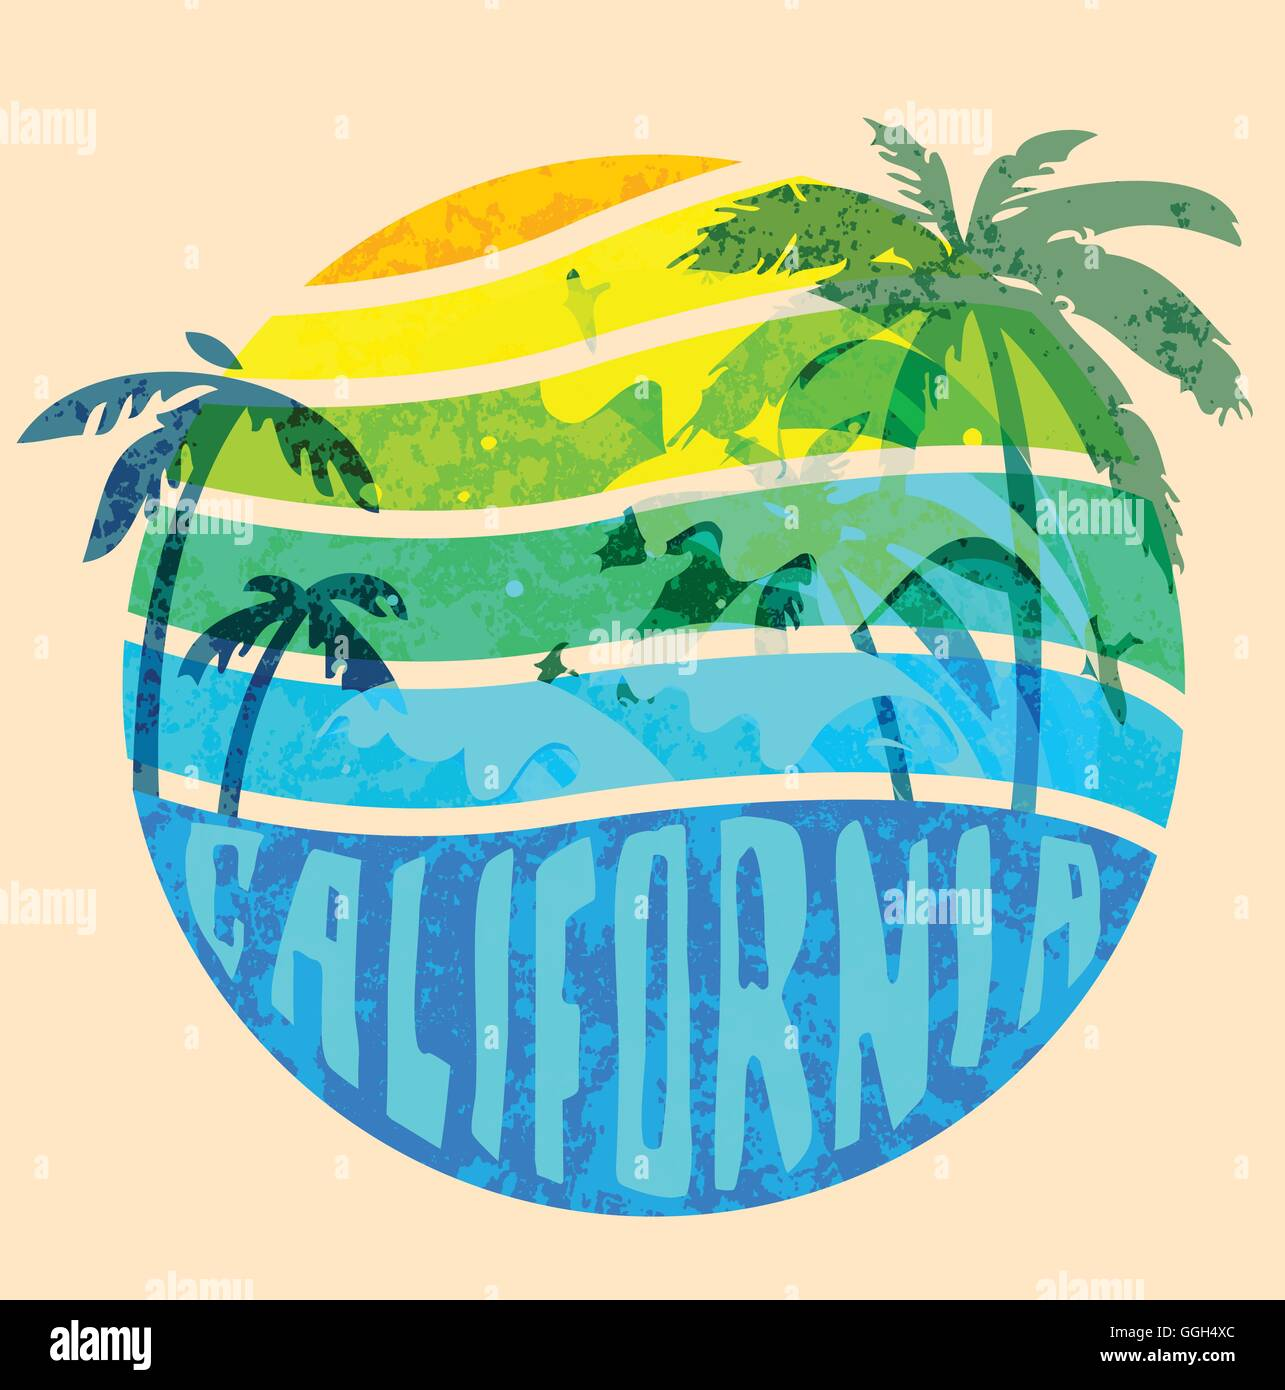 California Beach Typography Graphics T Shirt Printing Design For